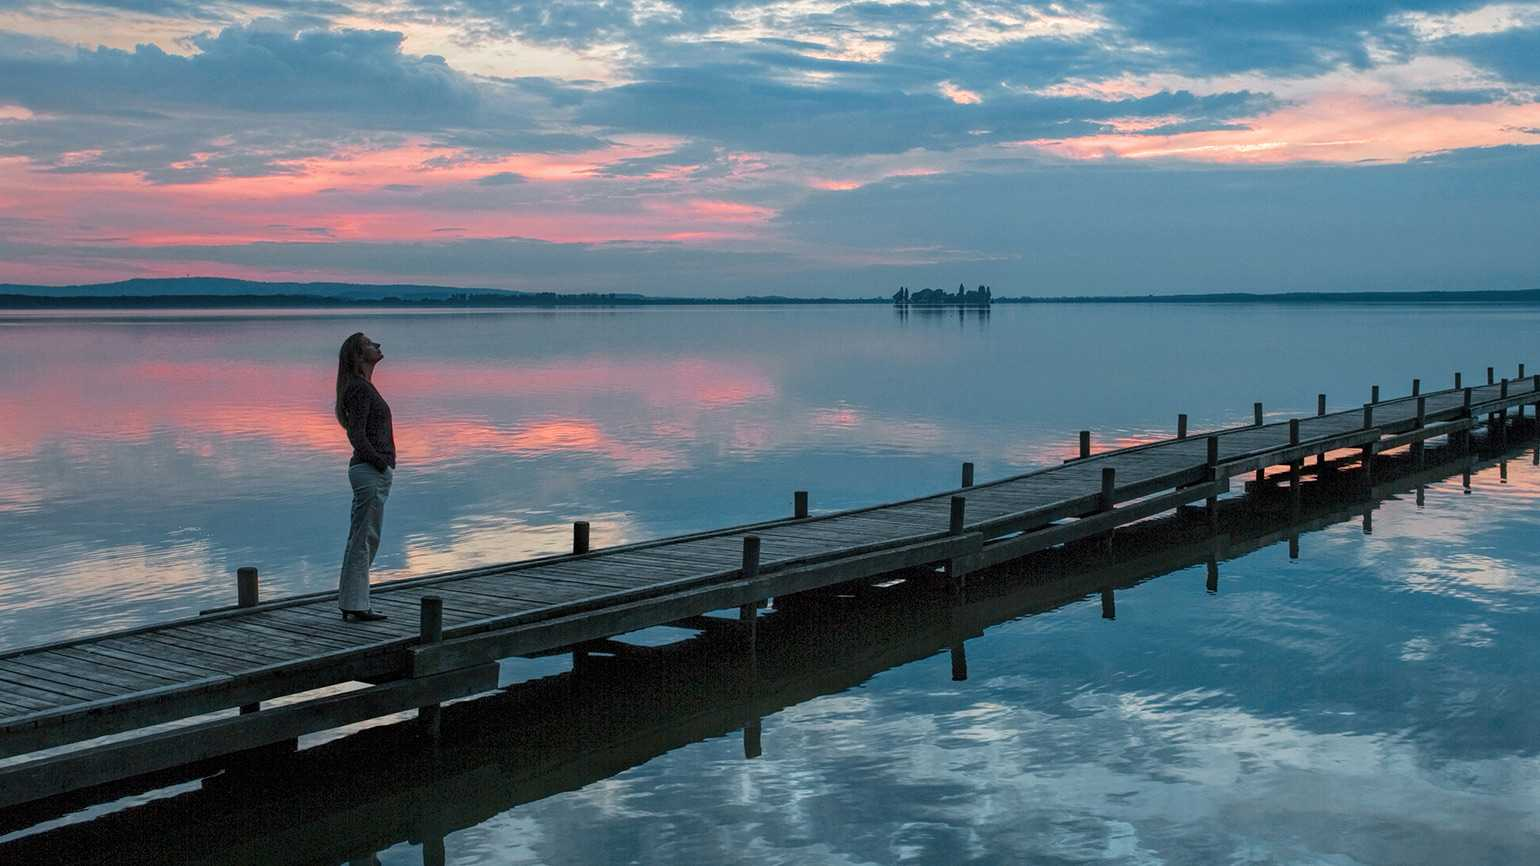 A woman gazes skyward at sunset while standing on a jetty extending into a lake